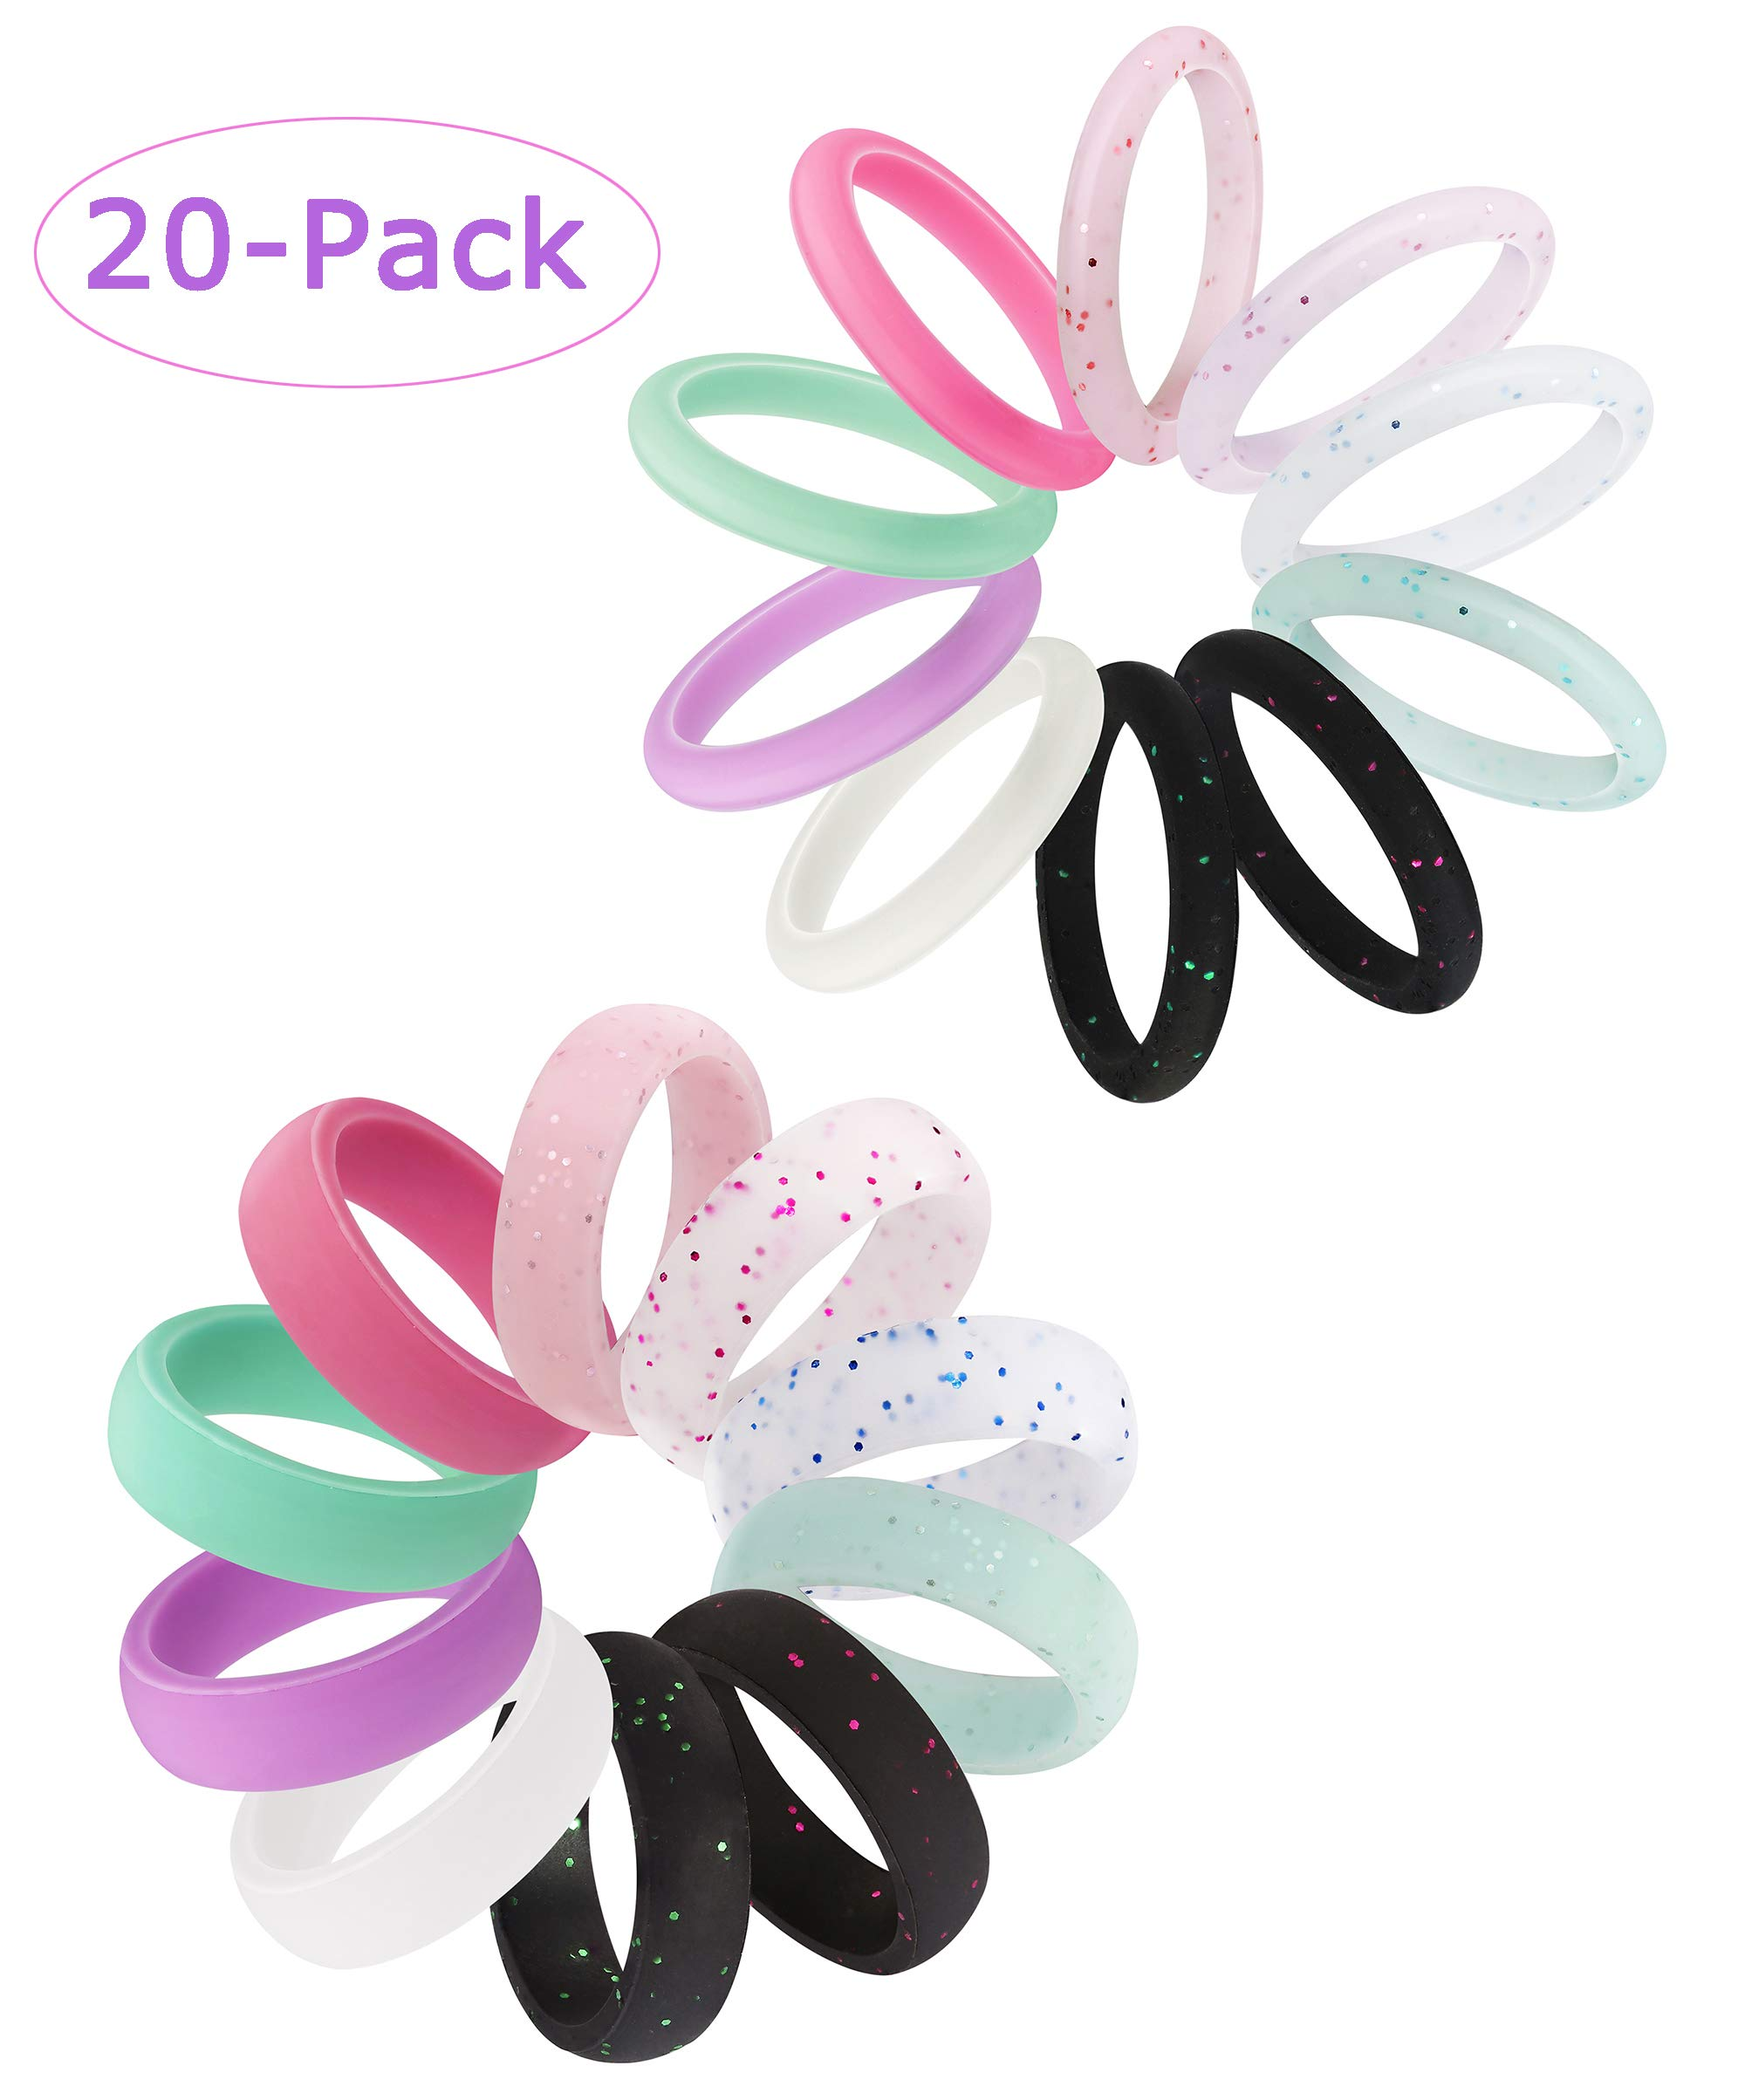 Jstyle 20Pcs Silicone Wedding Ring Women Mens Wedding Bands Thin Stackable Durable Comfortable Antibacterial Soft Rubber Rings Sport Ring Size 6